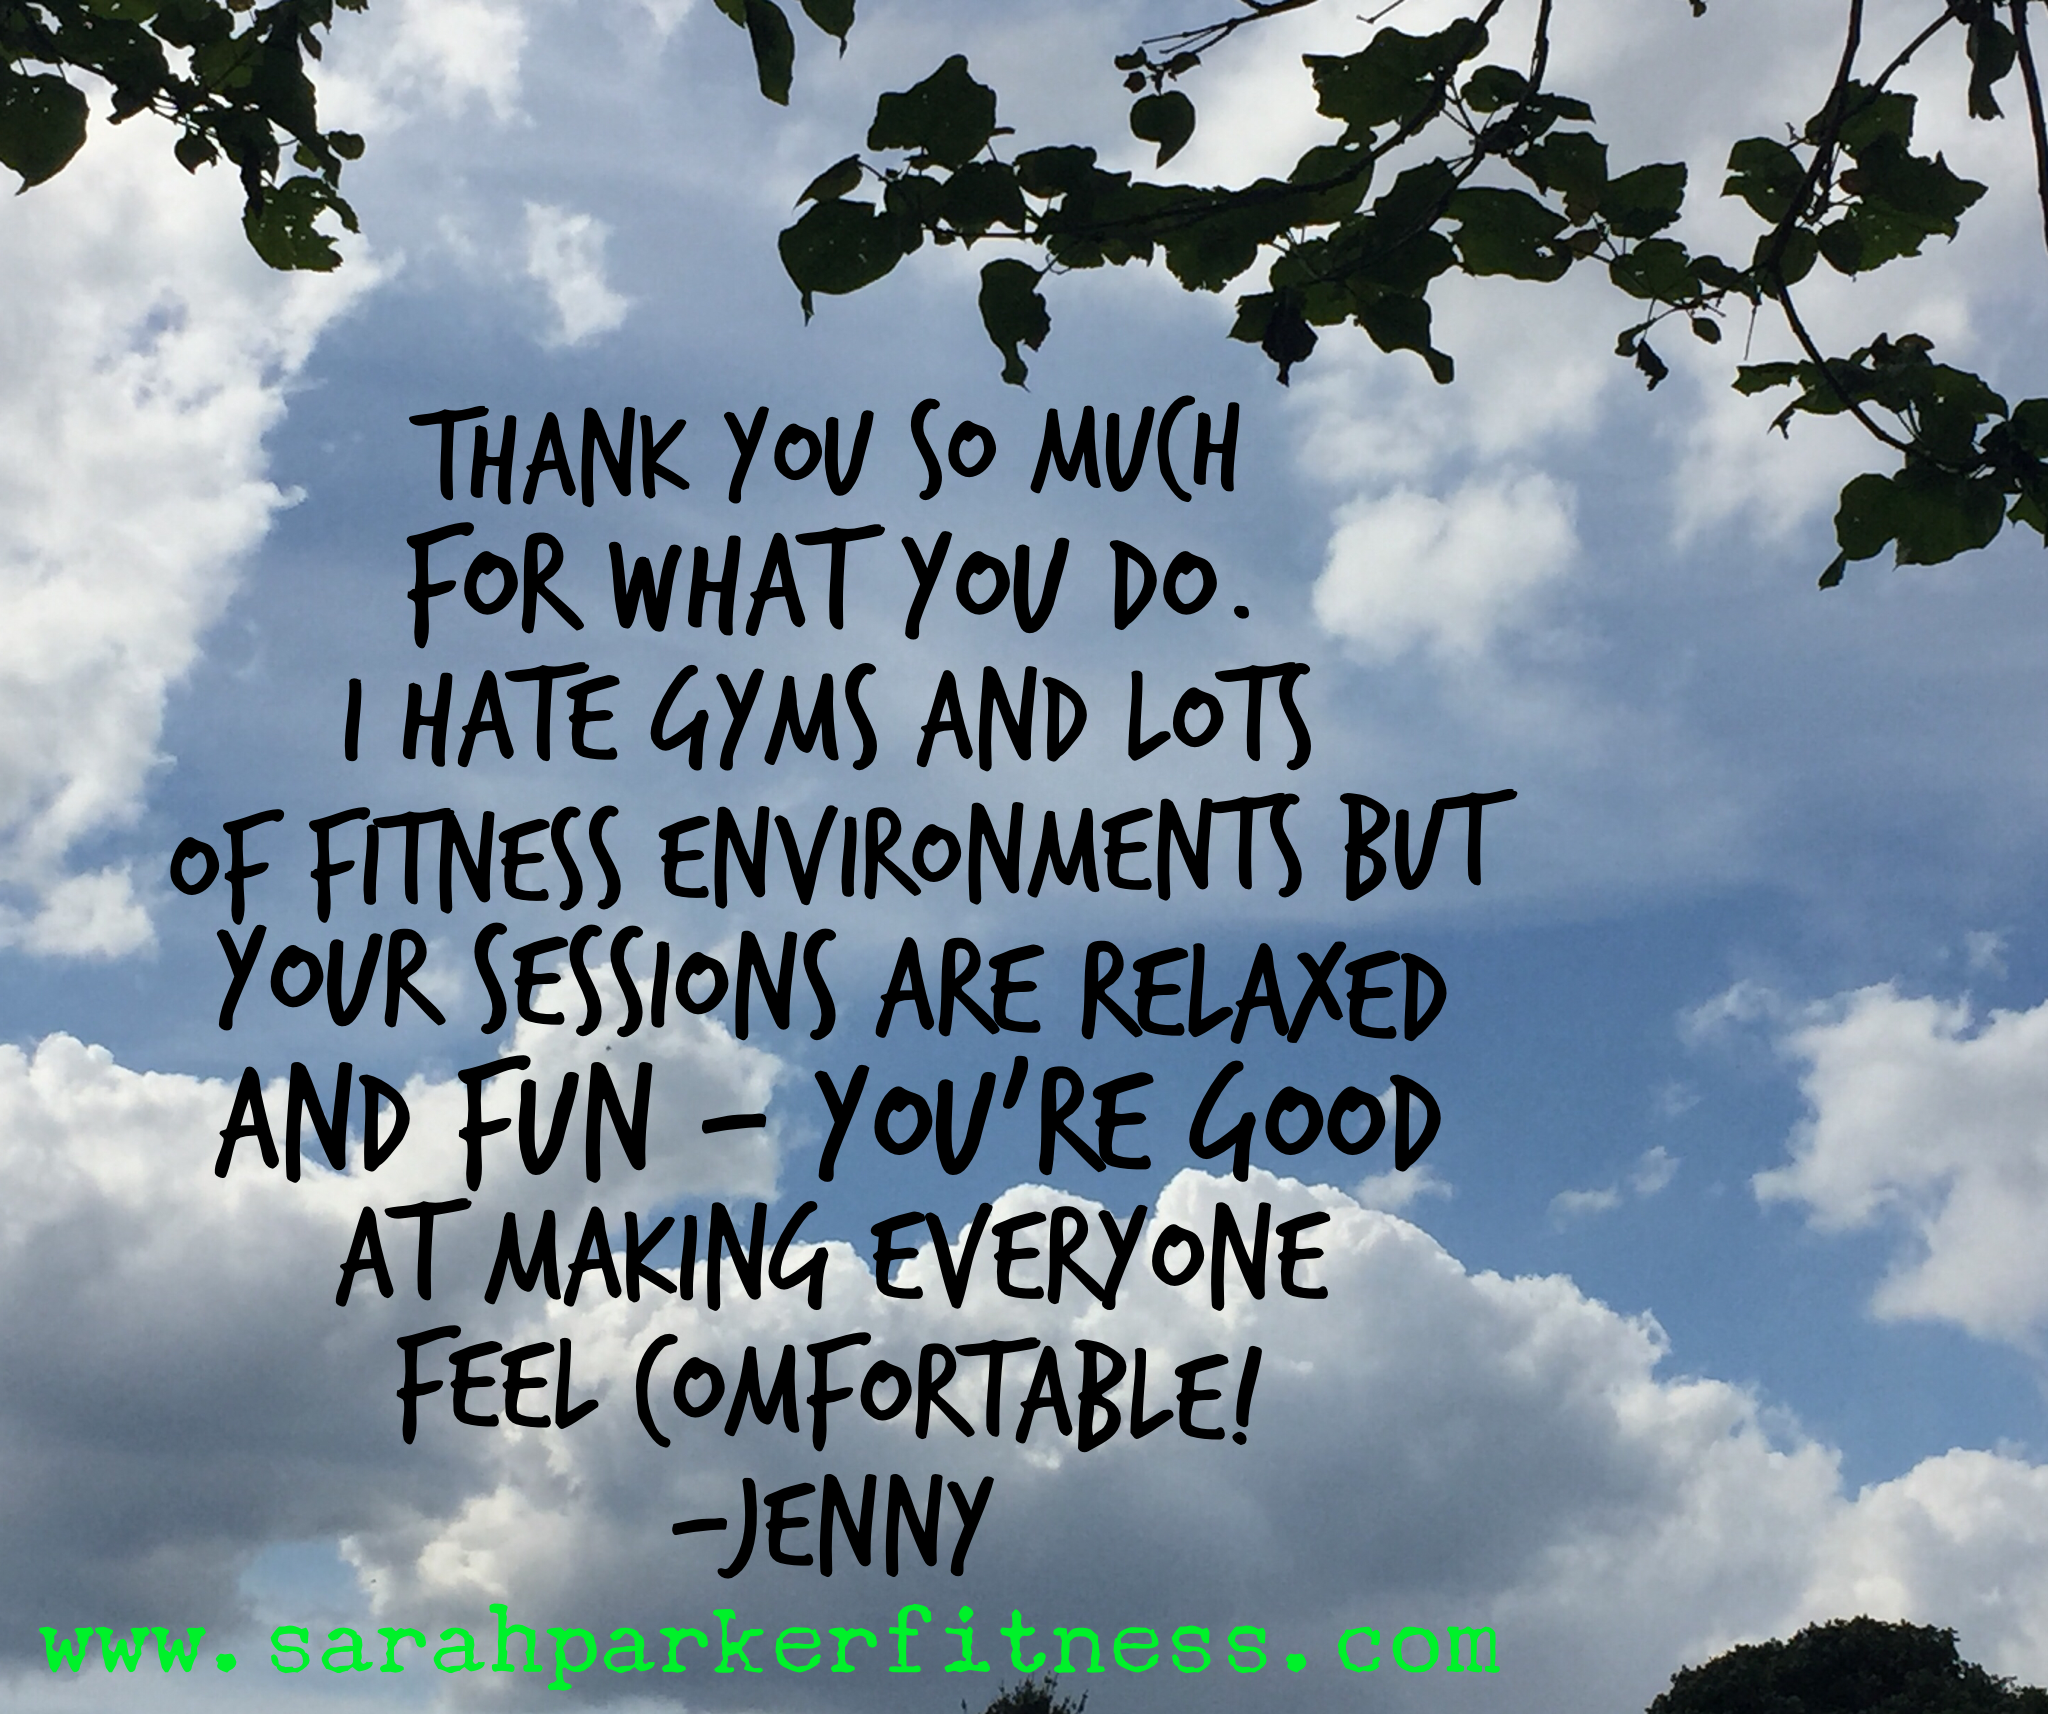 "Text reads ""Thank you so much for what you do. I hate gyms and lots of fitness environments but your sessions are relaxed and fun - you're good at making everyone feel comfortable!"